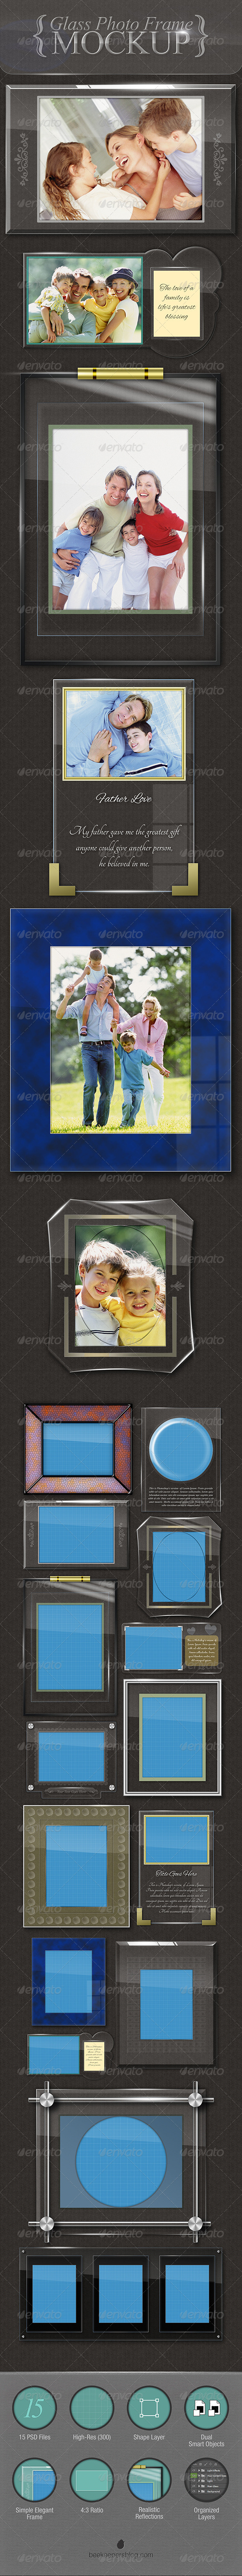 GraphicRiver Glass Photo Frames Mockup 5840826